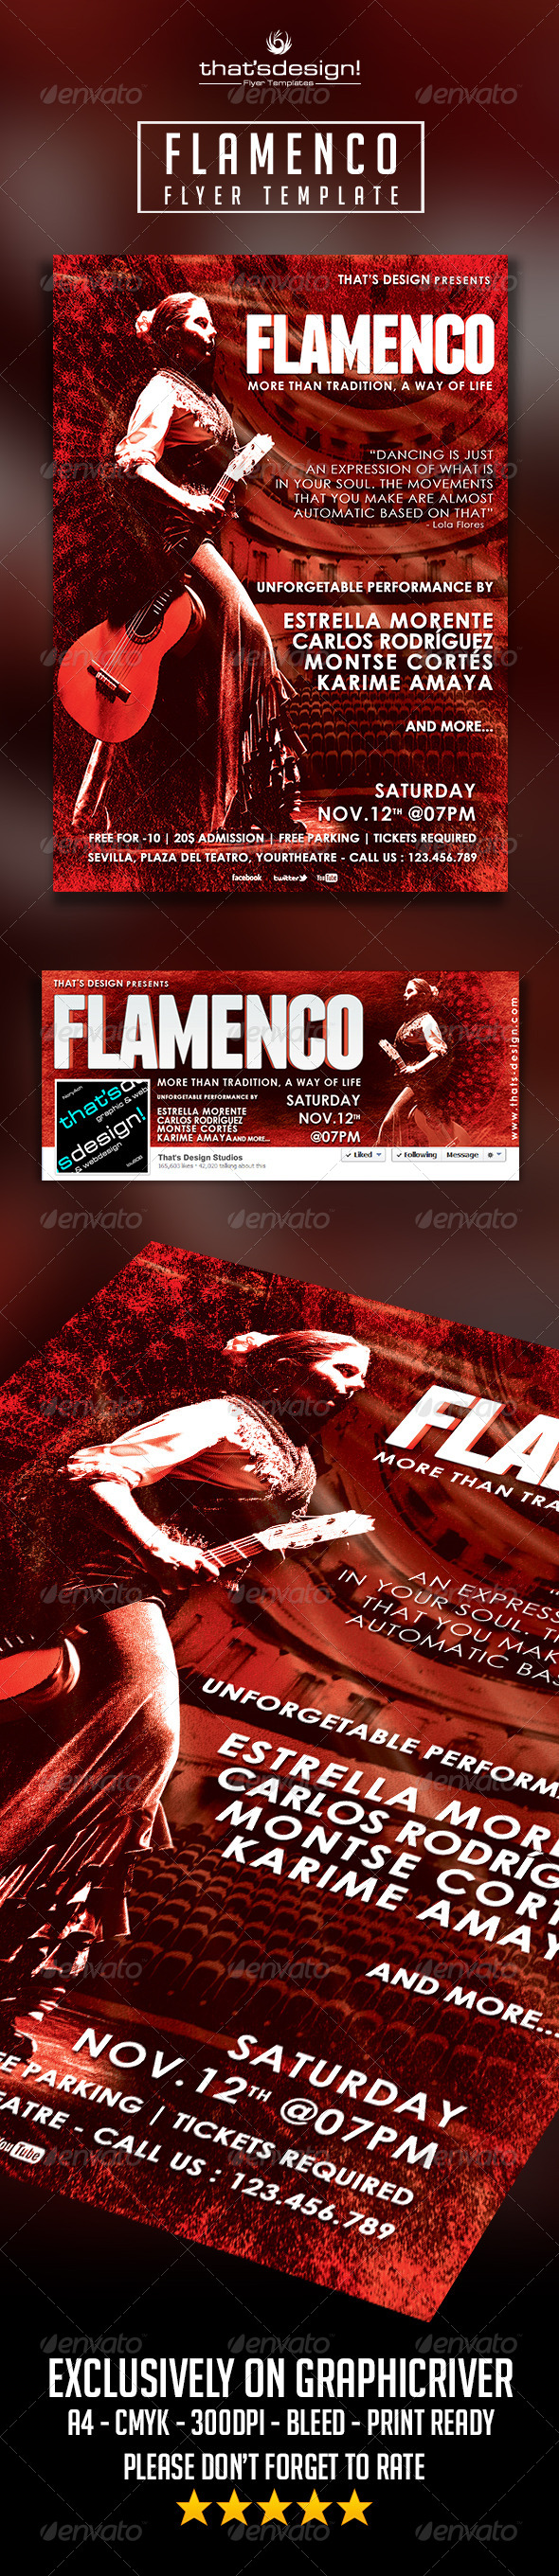 Flamenco Flyer Template - Concerts Events